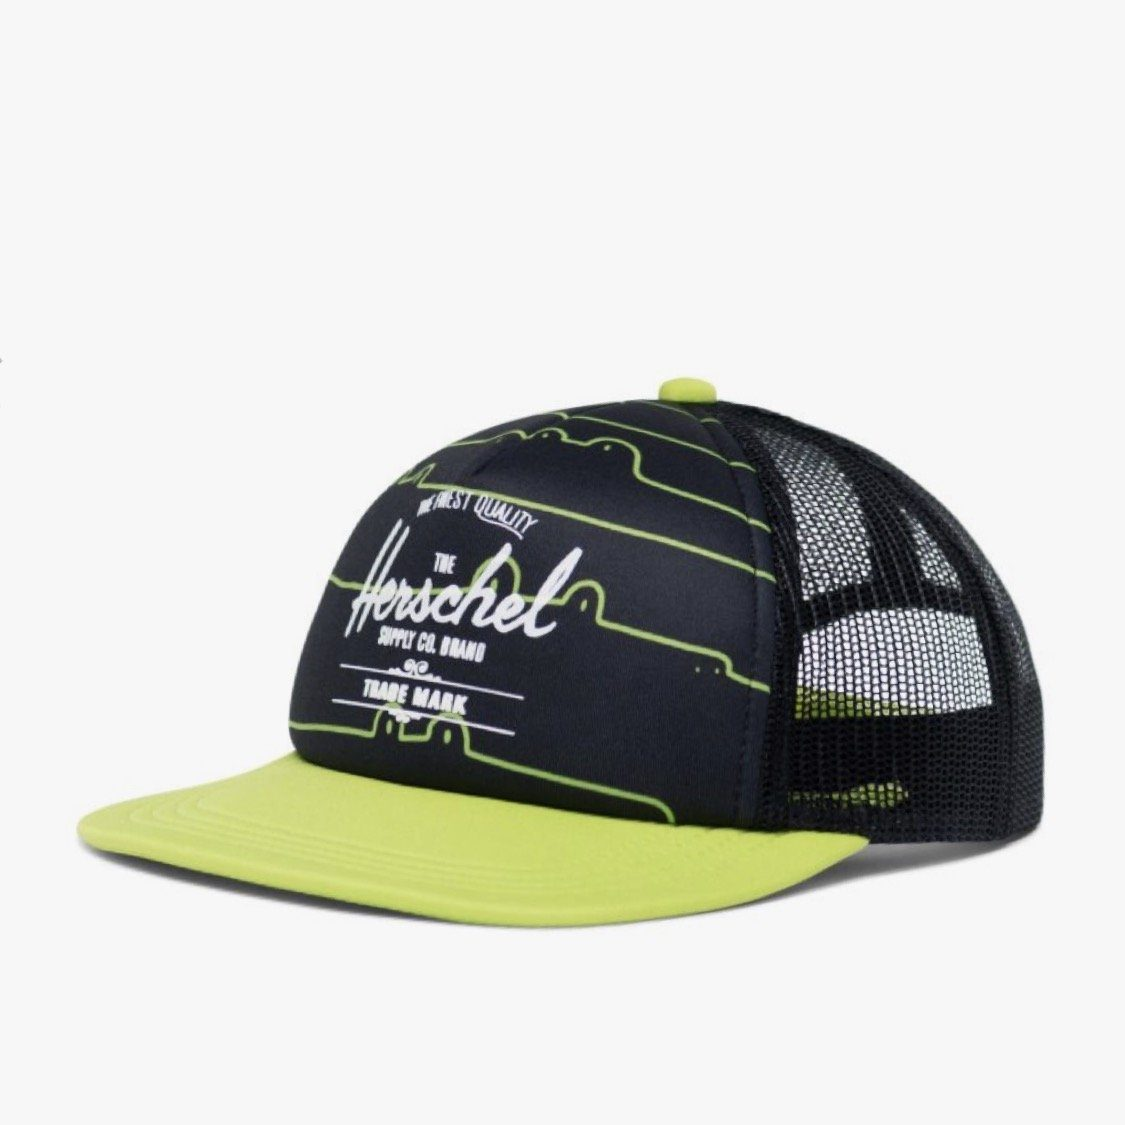 1122-1046-OS Herschel Whaler Cap - Later Gaitor / Lime Green (5+ Years) Hats Herschel